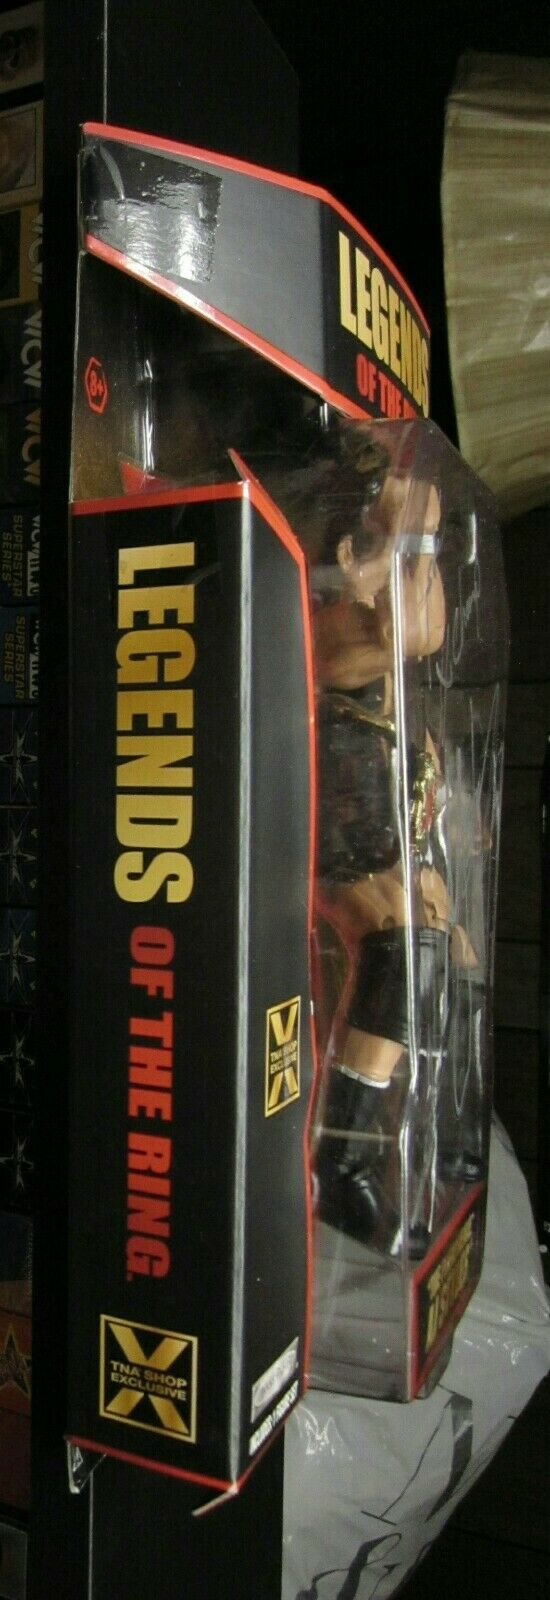 TNA IMPACT WRESTLING LEGENDS OF THE RING AJ STYLES STYLES STYLES AUTOGRAPH SIGNED cifra WWE e9c861